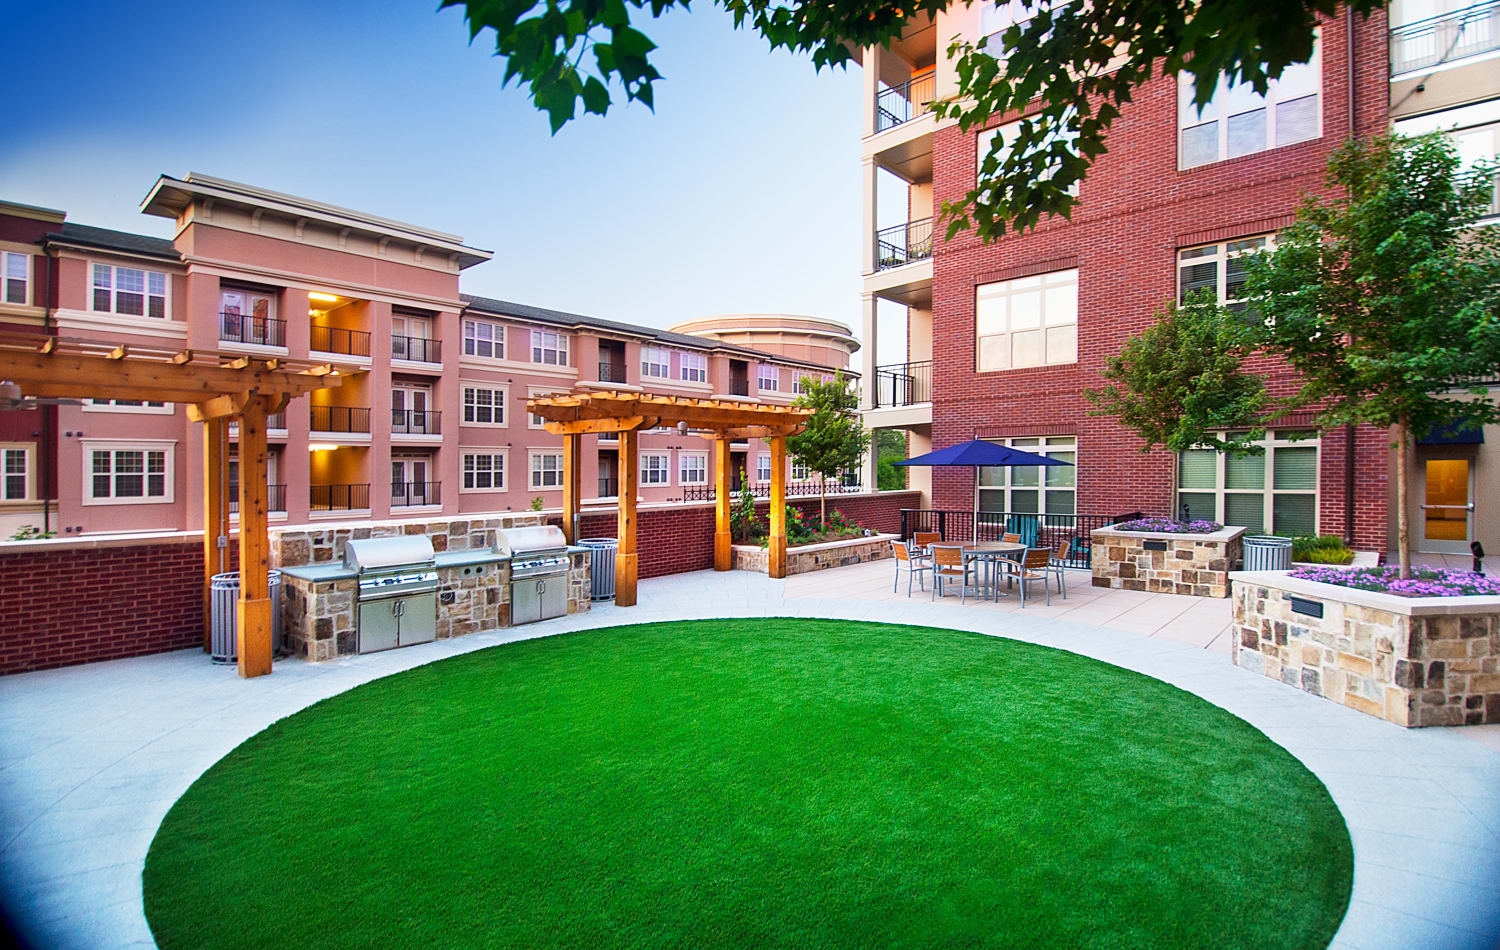 Rooftop grassy area and outdoor BBQ grills at Emory Point